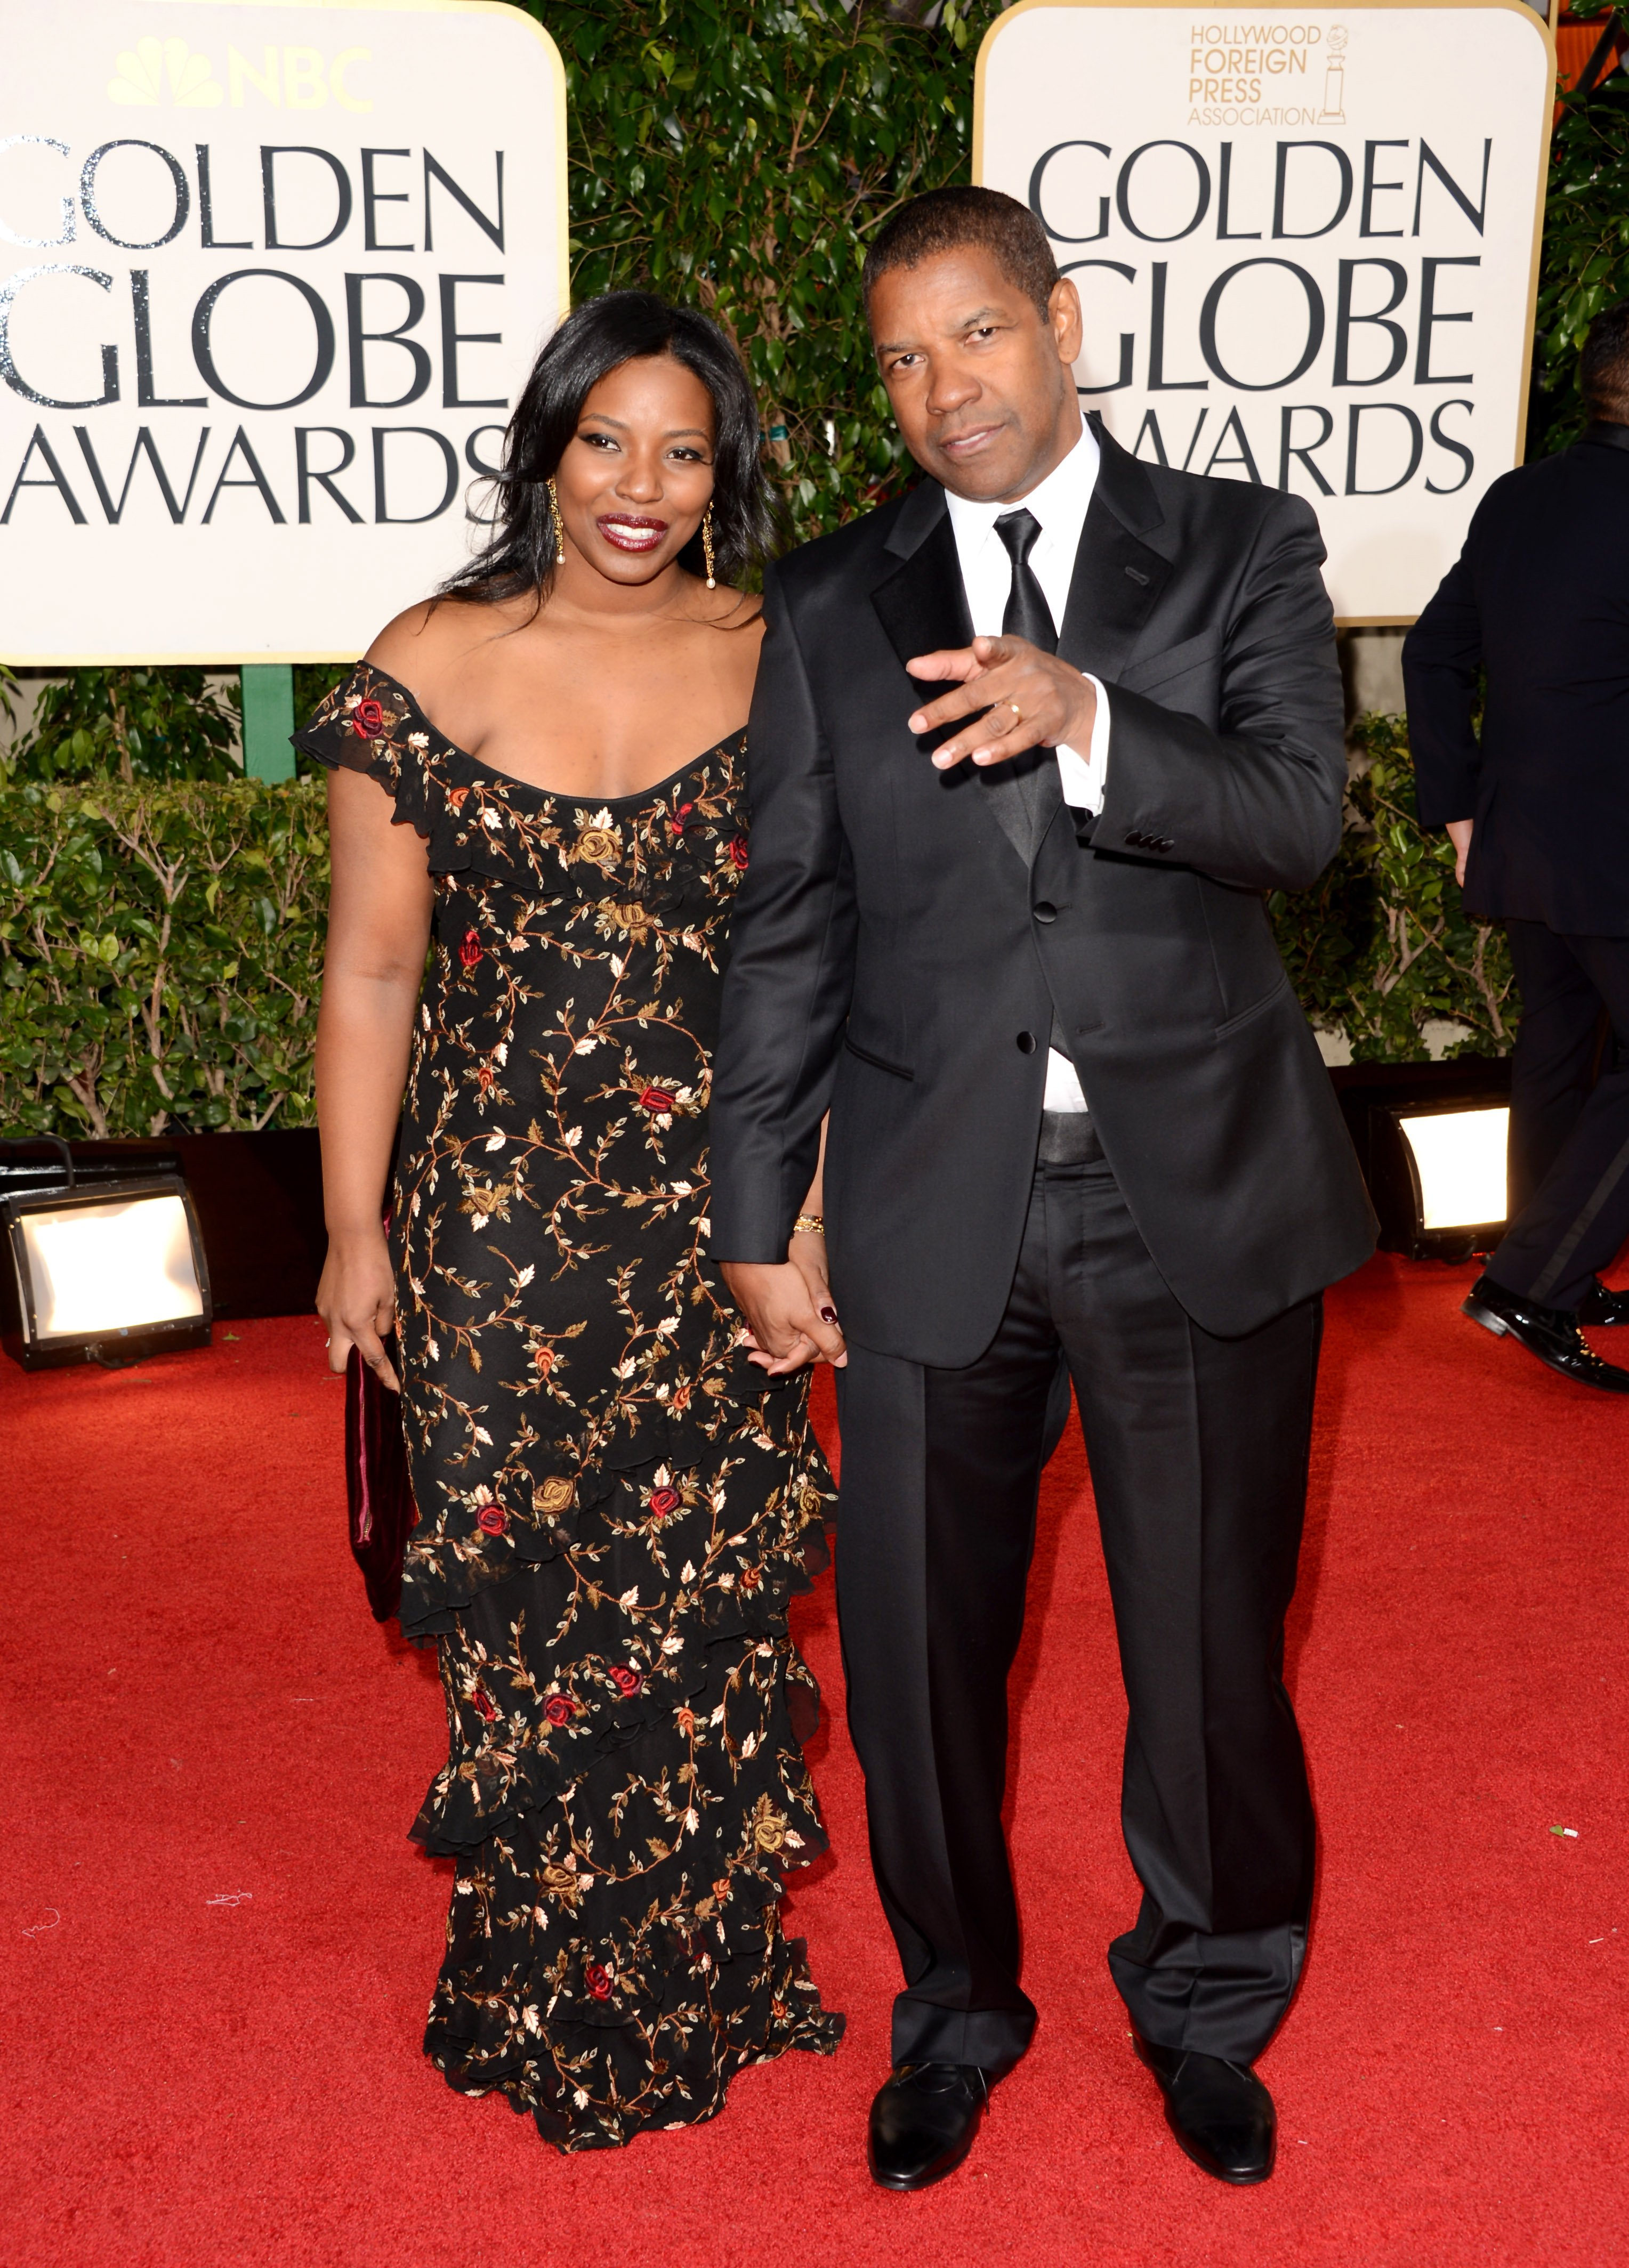 Denzel Washington and Pauletta Washington at the 2013 Golden Globe Awards in Beverly Hills, California. | Photo: Getty Images